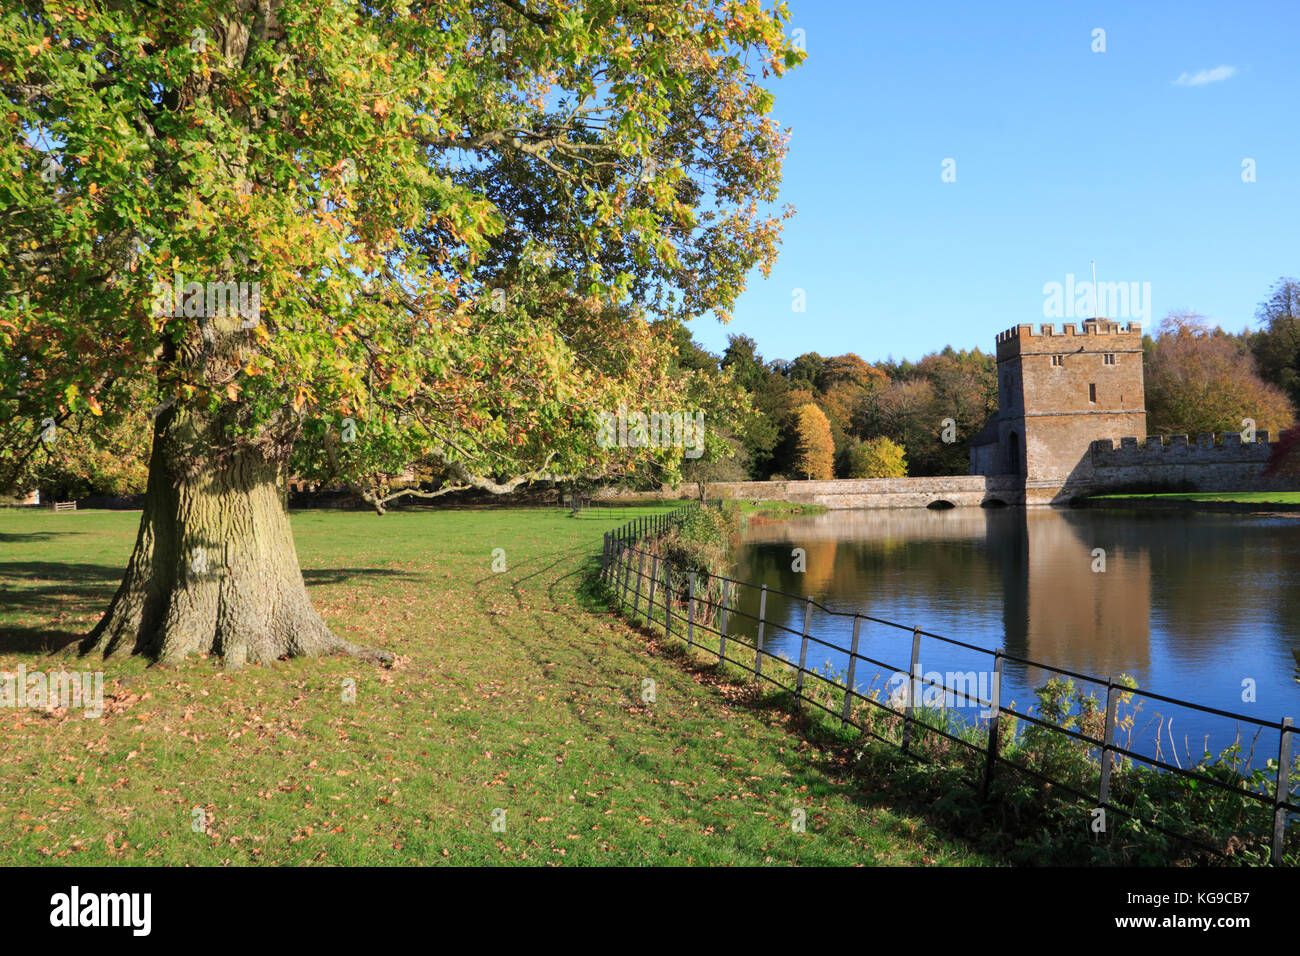 Autumn trees in the grounds of Broughton Castle near Banbury, Oxfordshire - Stock Image